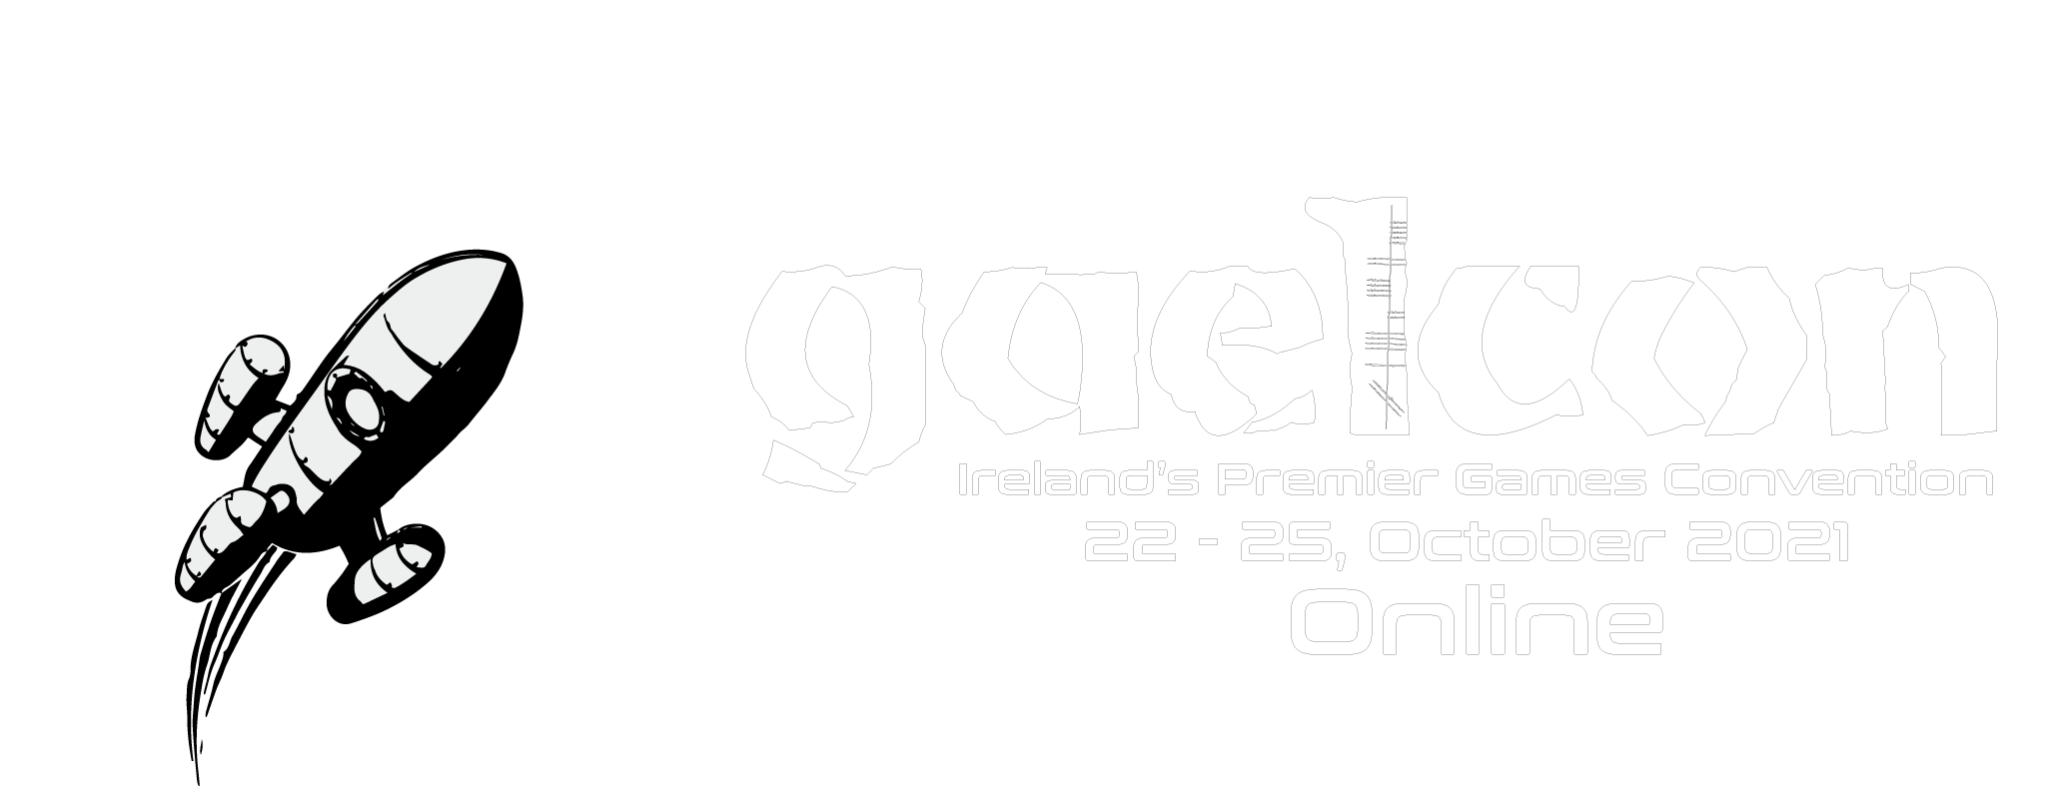 Image of Gaelcon logo with a rocketship on it. Reads Irelands Premier Gaming Convention 22-25th October